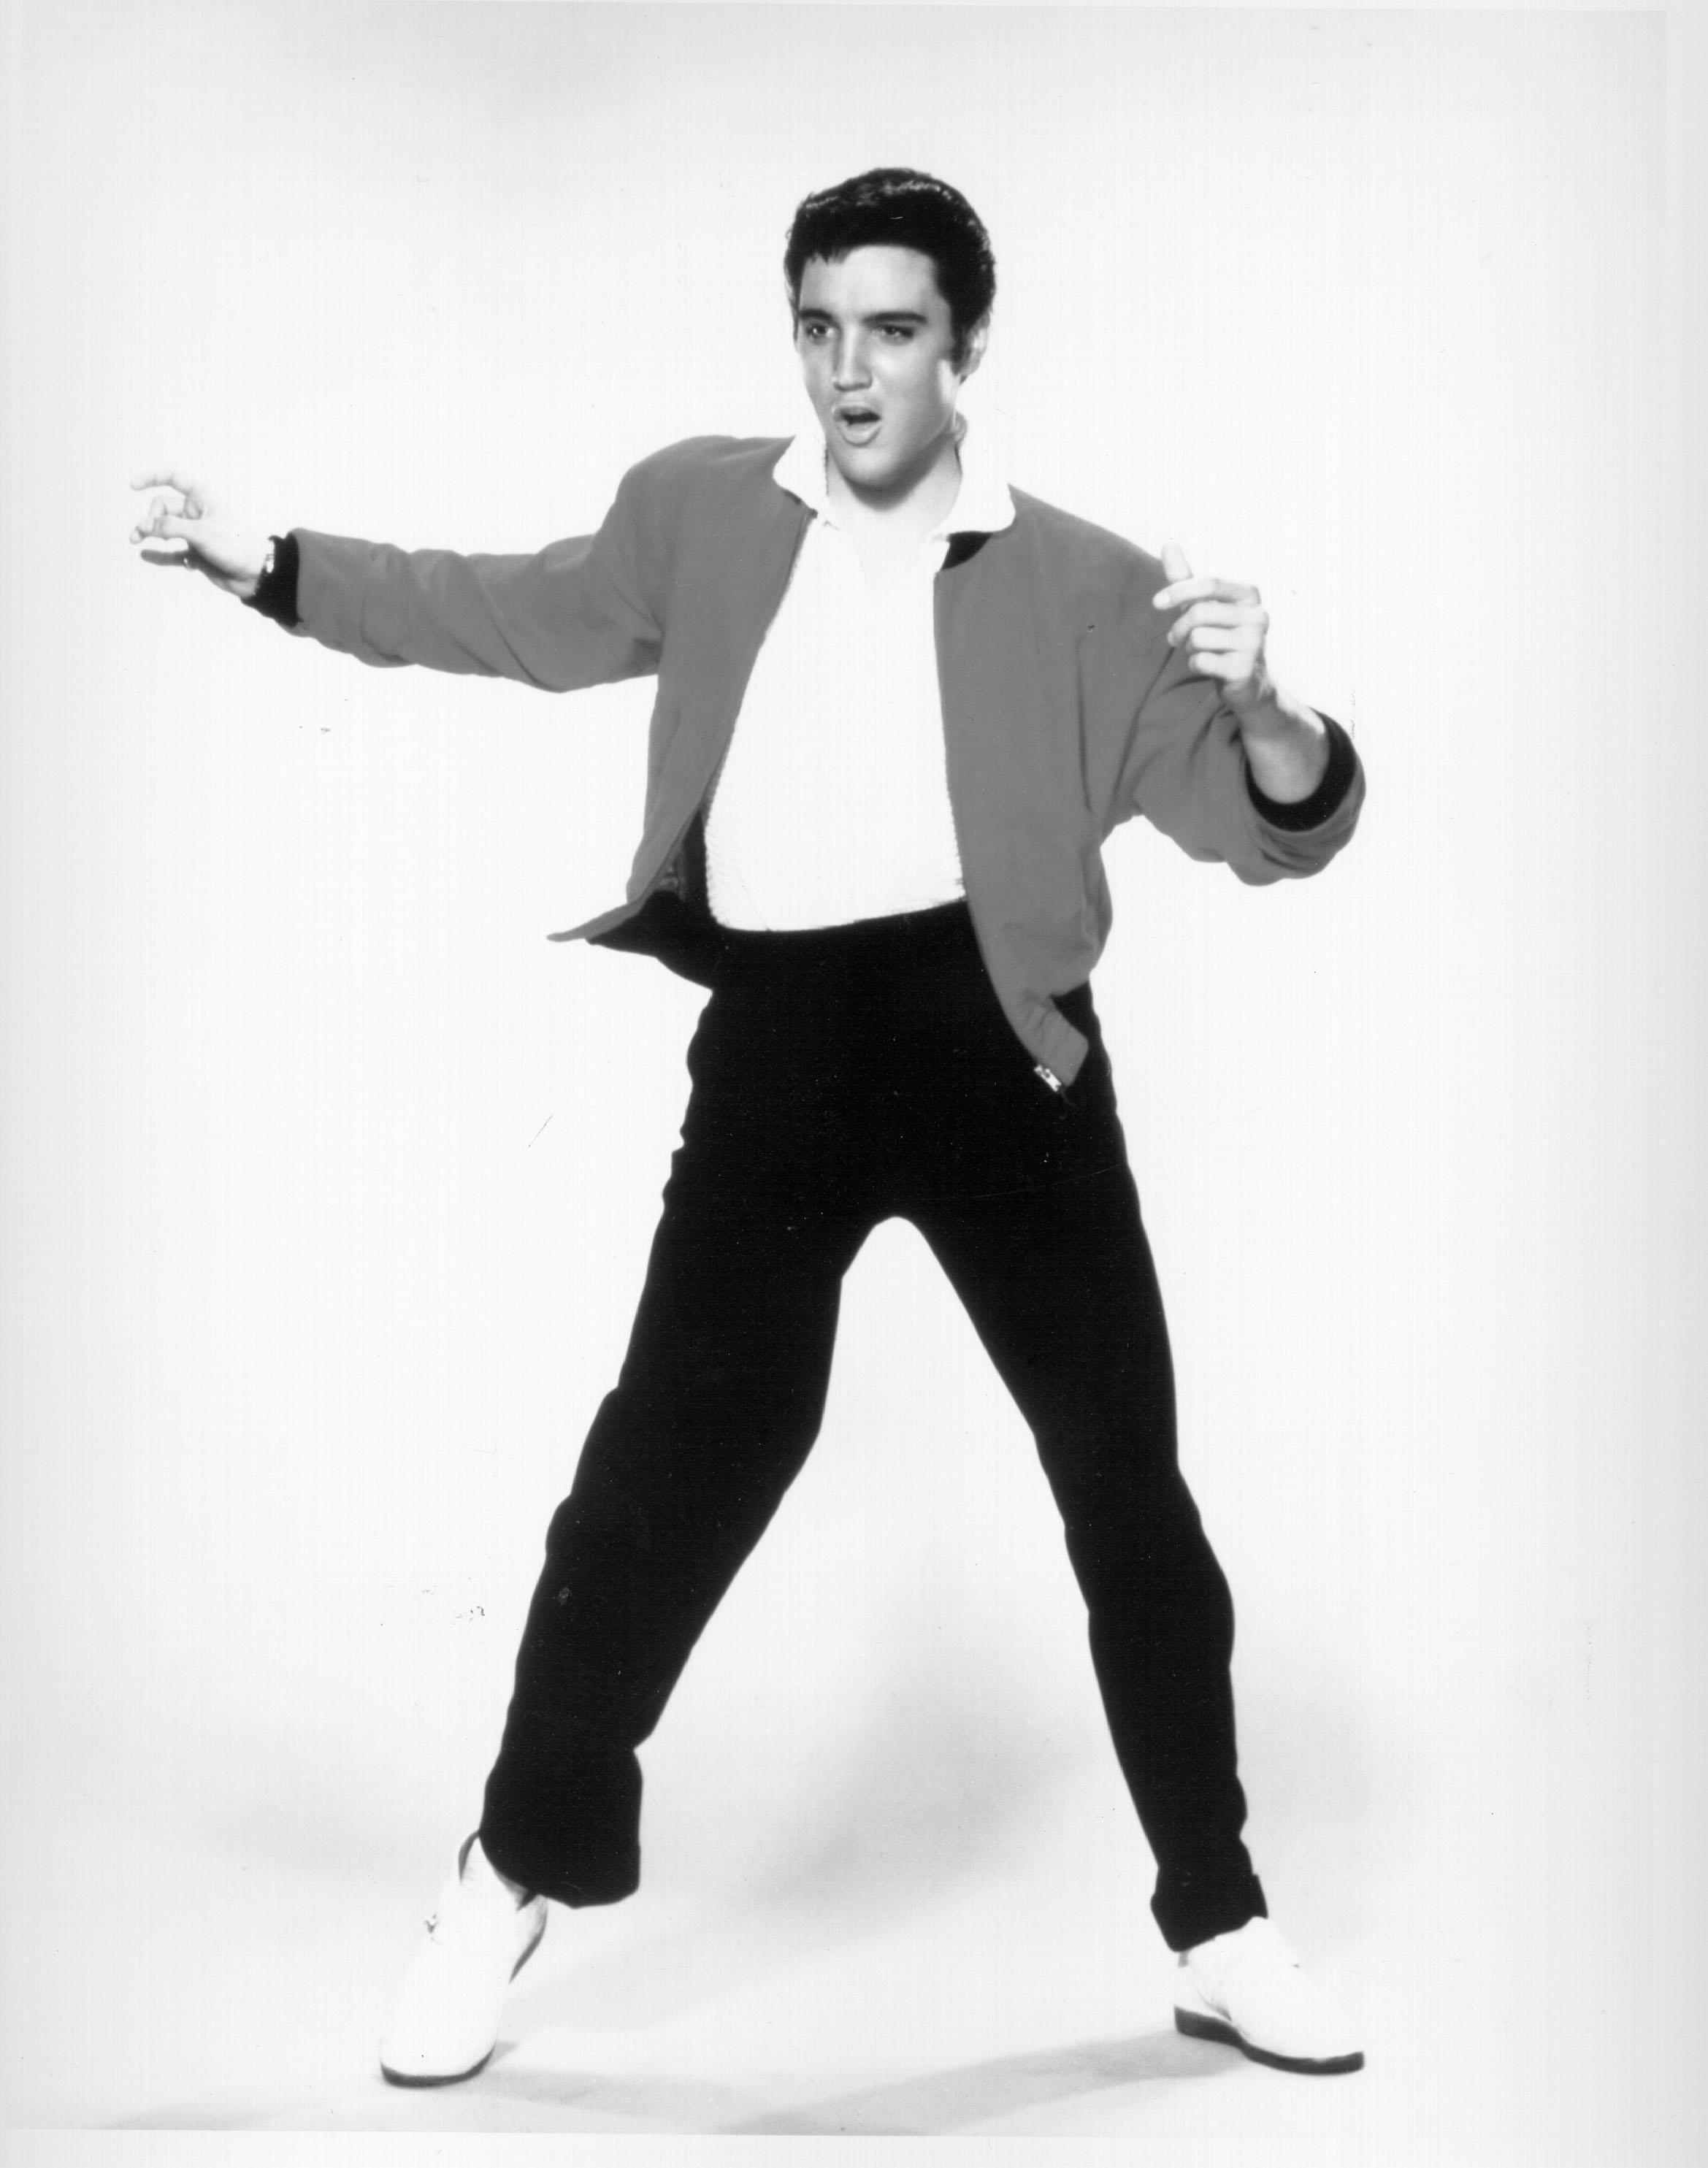 Rock and roll singer Elvis Presley